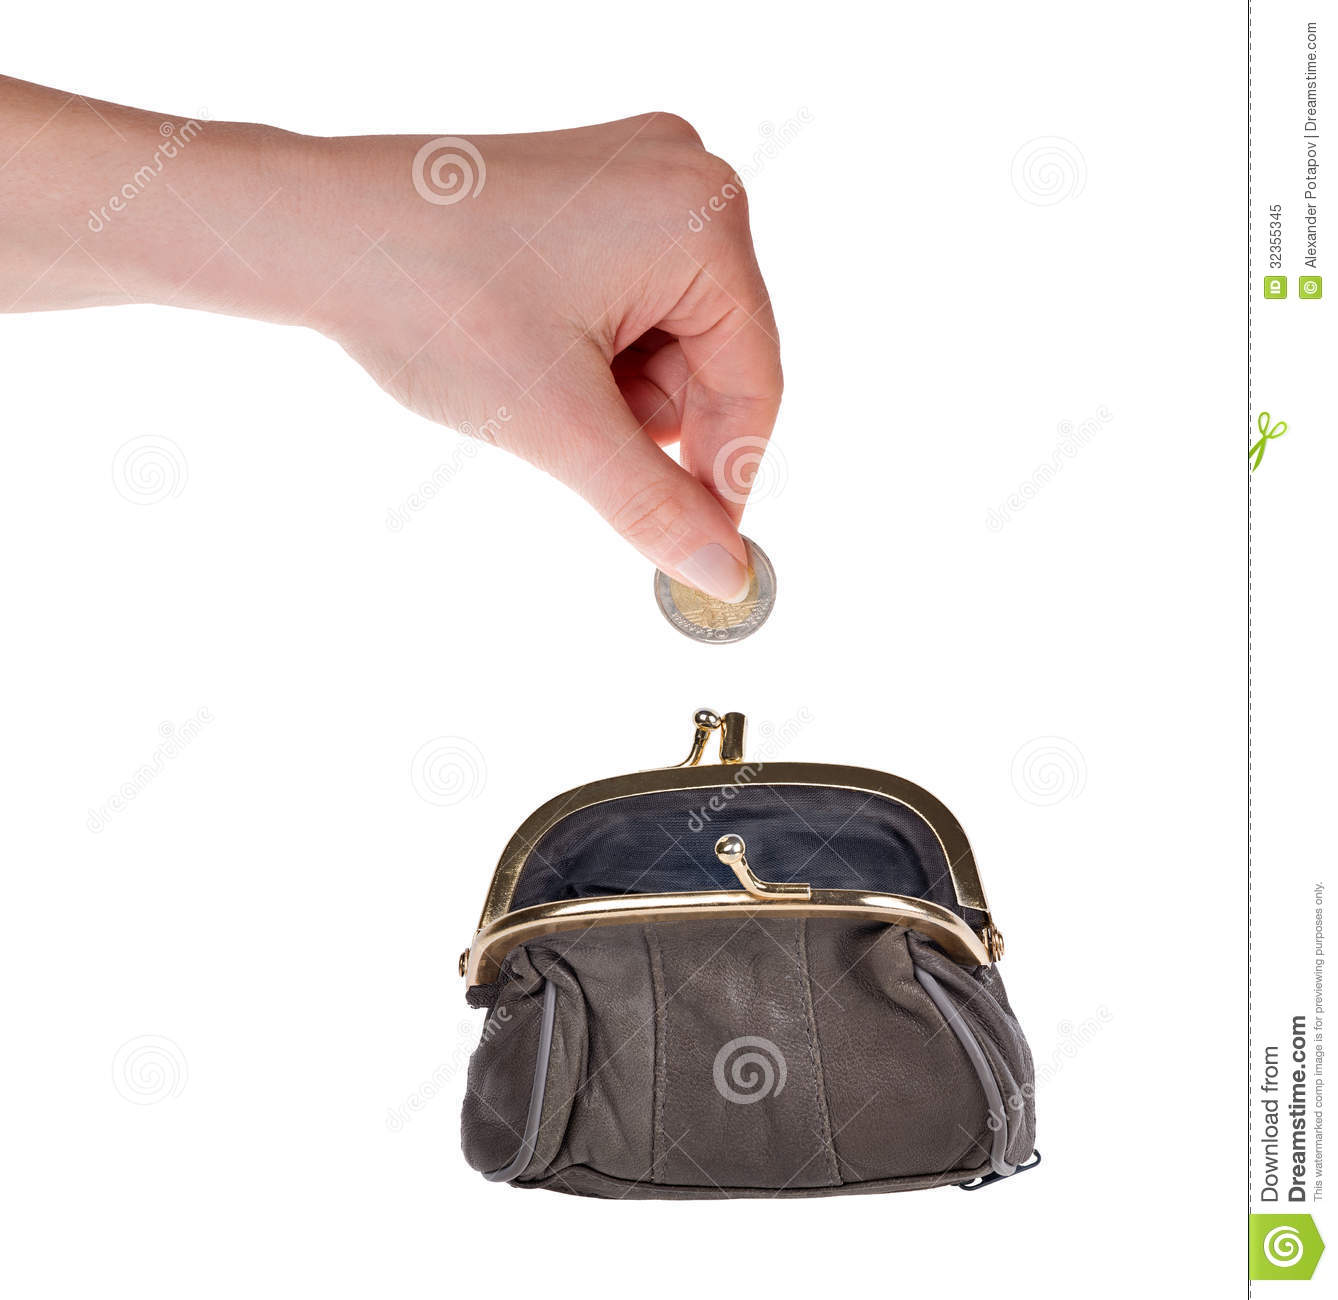 Human hand put euro coin in purse on white